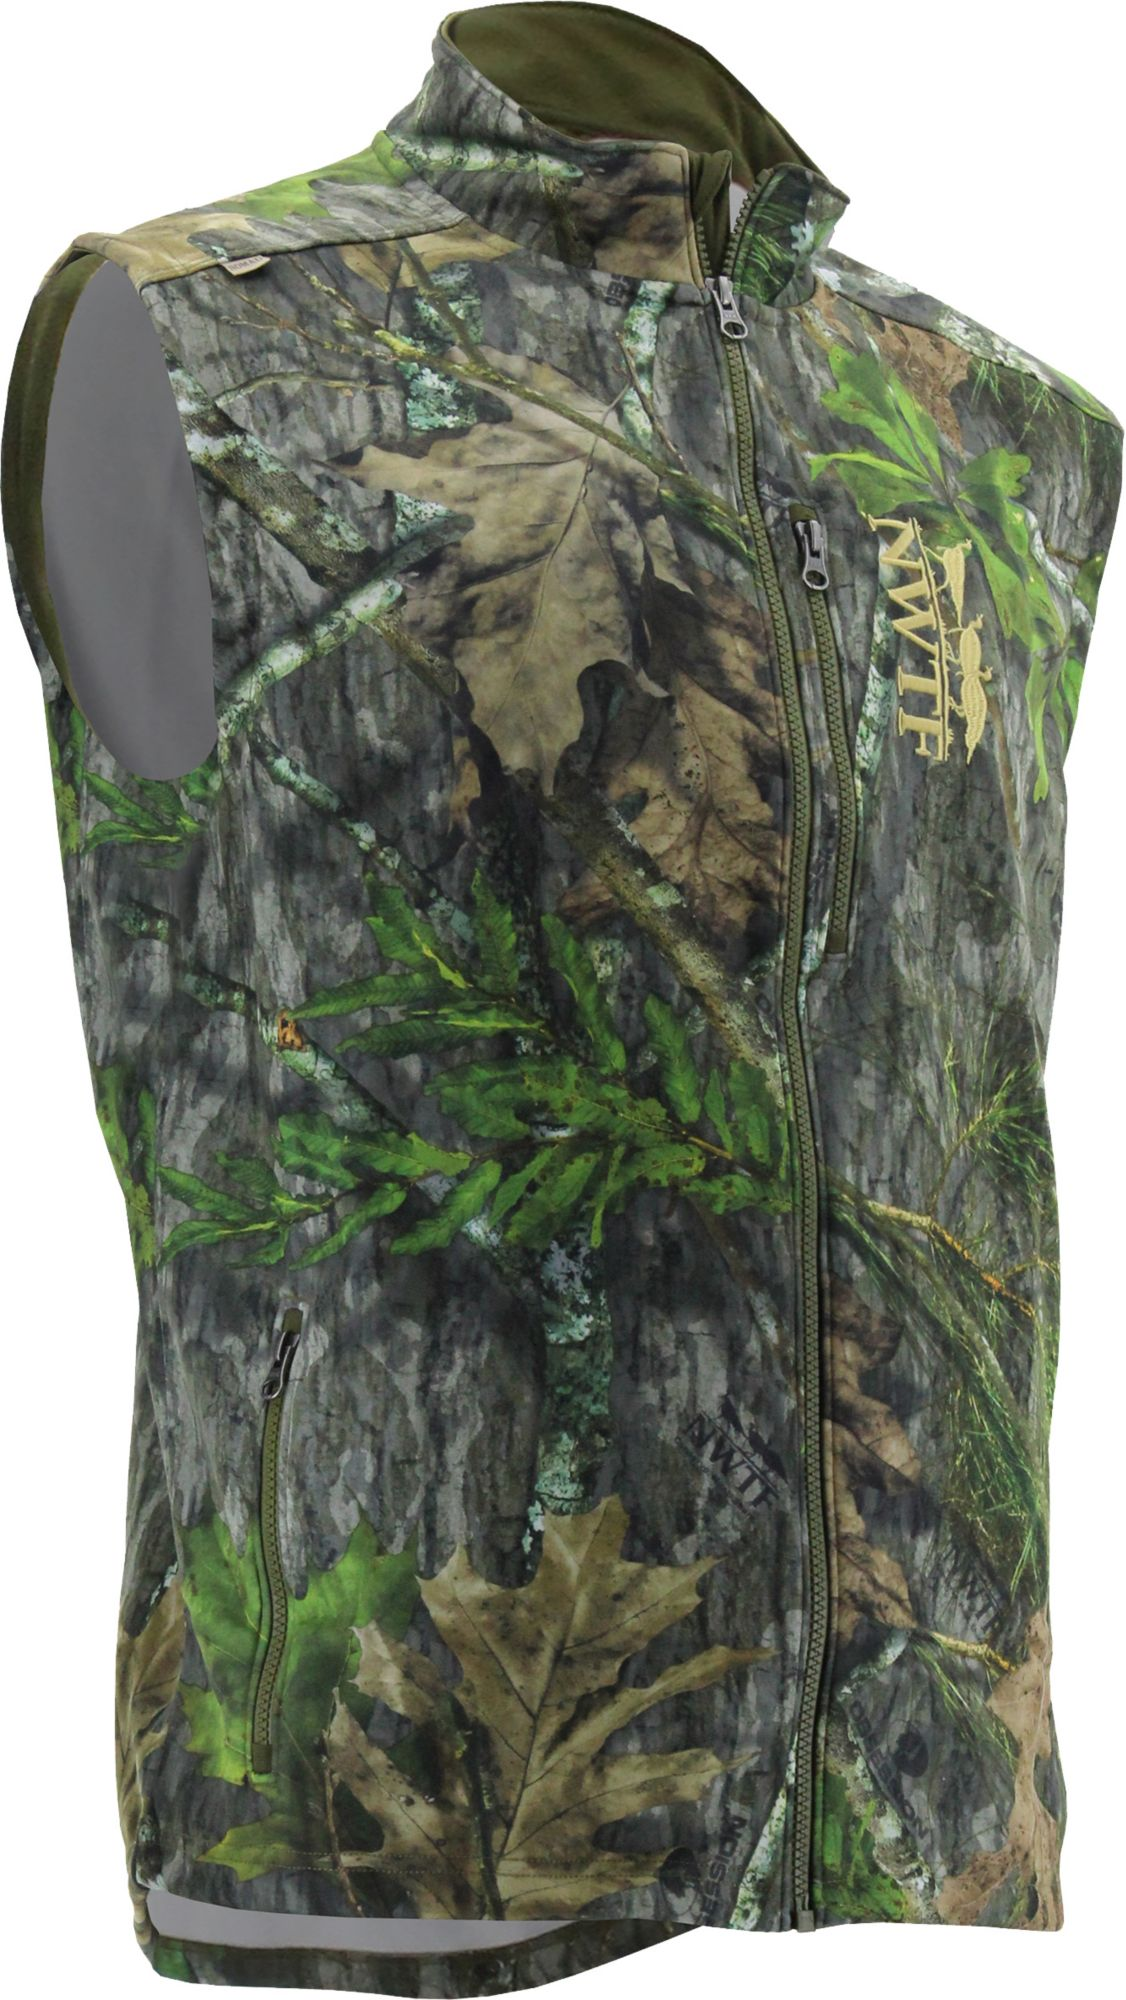 Nomad Men's Nwtf Fleece Vest, Size: Medium, Green thumbnail